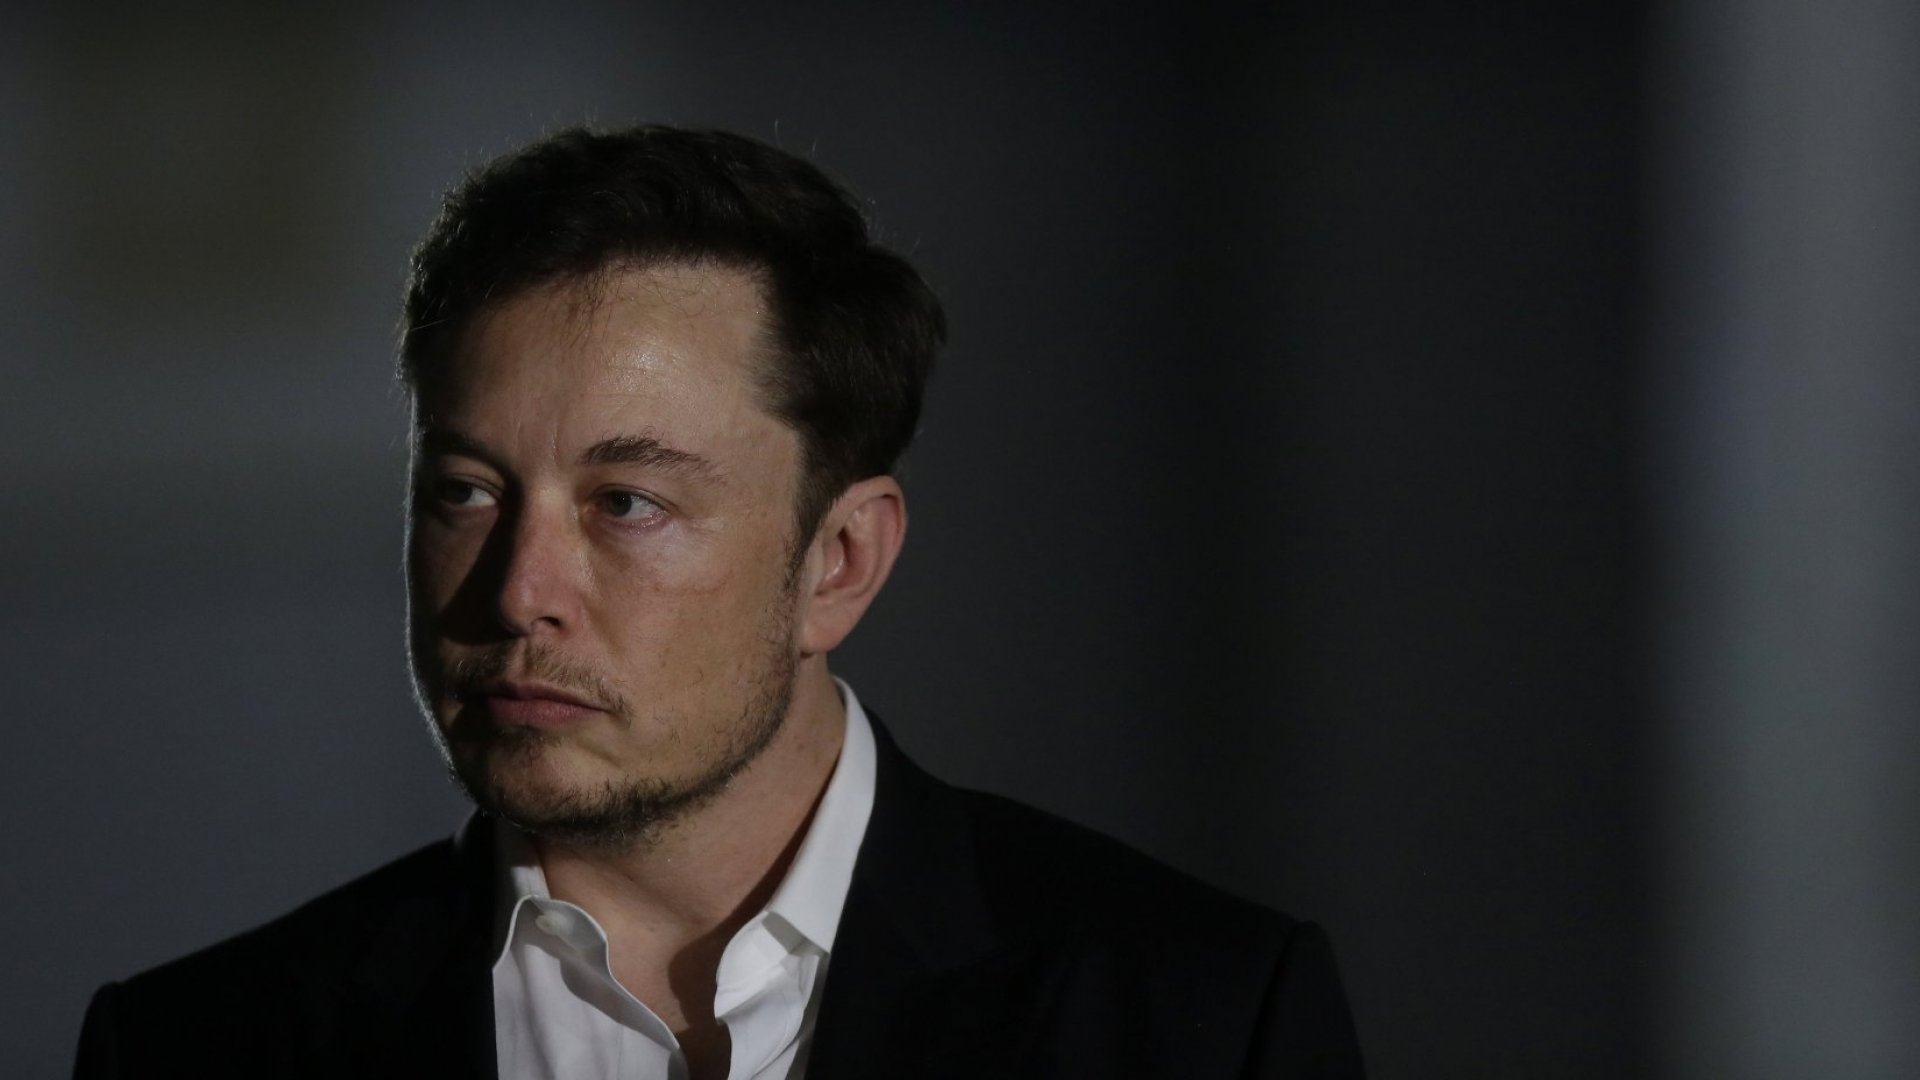 Elon Musk Is Being Sued By the Thai Cave Rescue Diver for Defamation